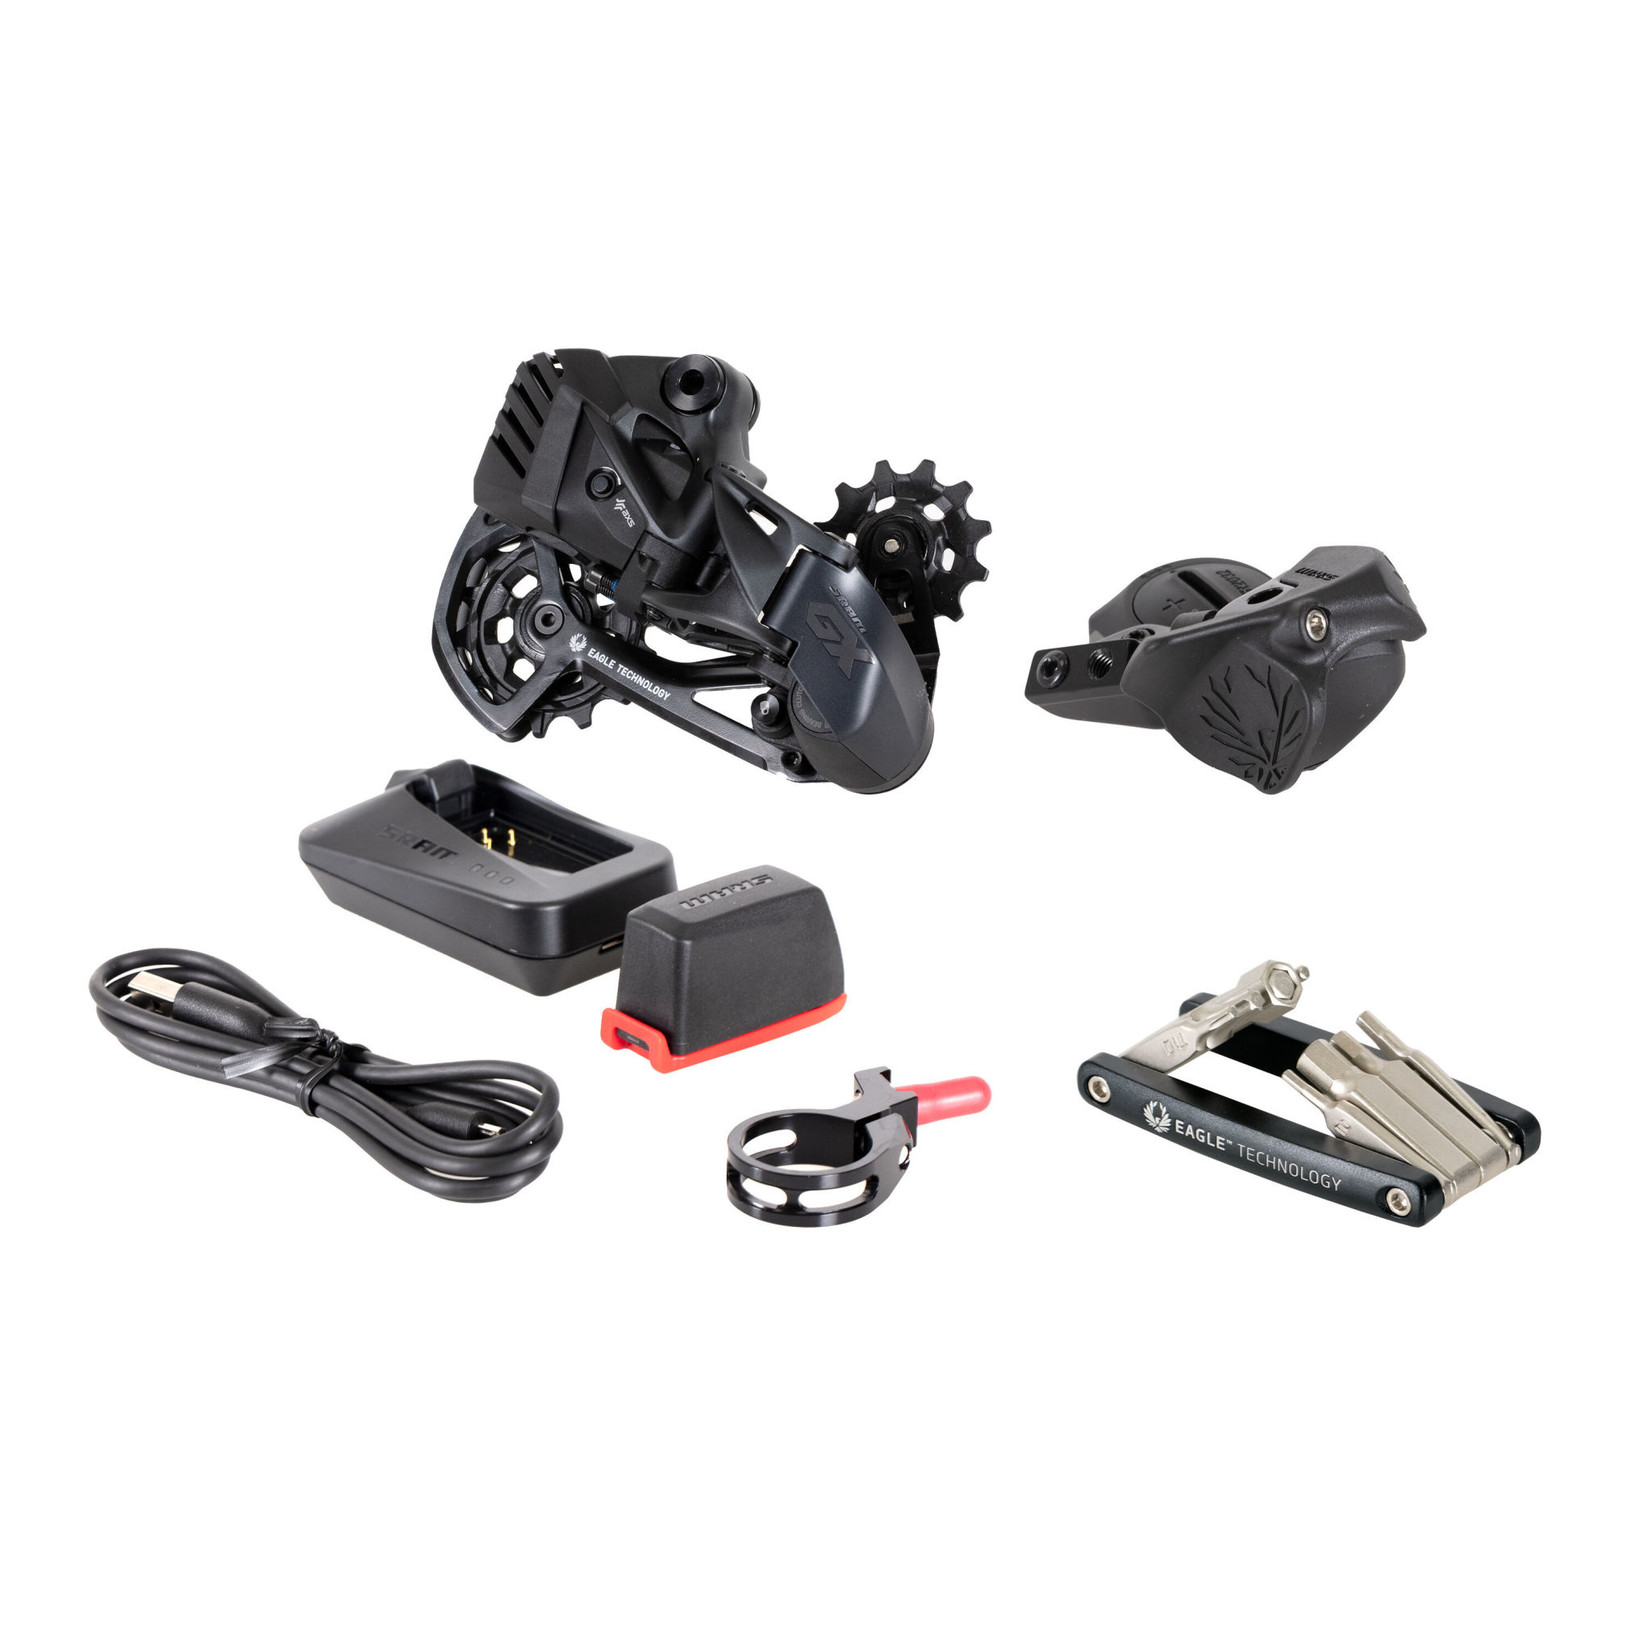 SRAM Upgrade Kit SRAM GX Eagle AXS  (Rear Der wBattery, Controller wClamp, Charger/Cord, Chain Gap Tool)